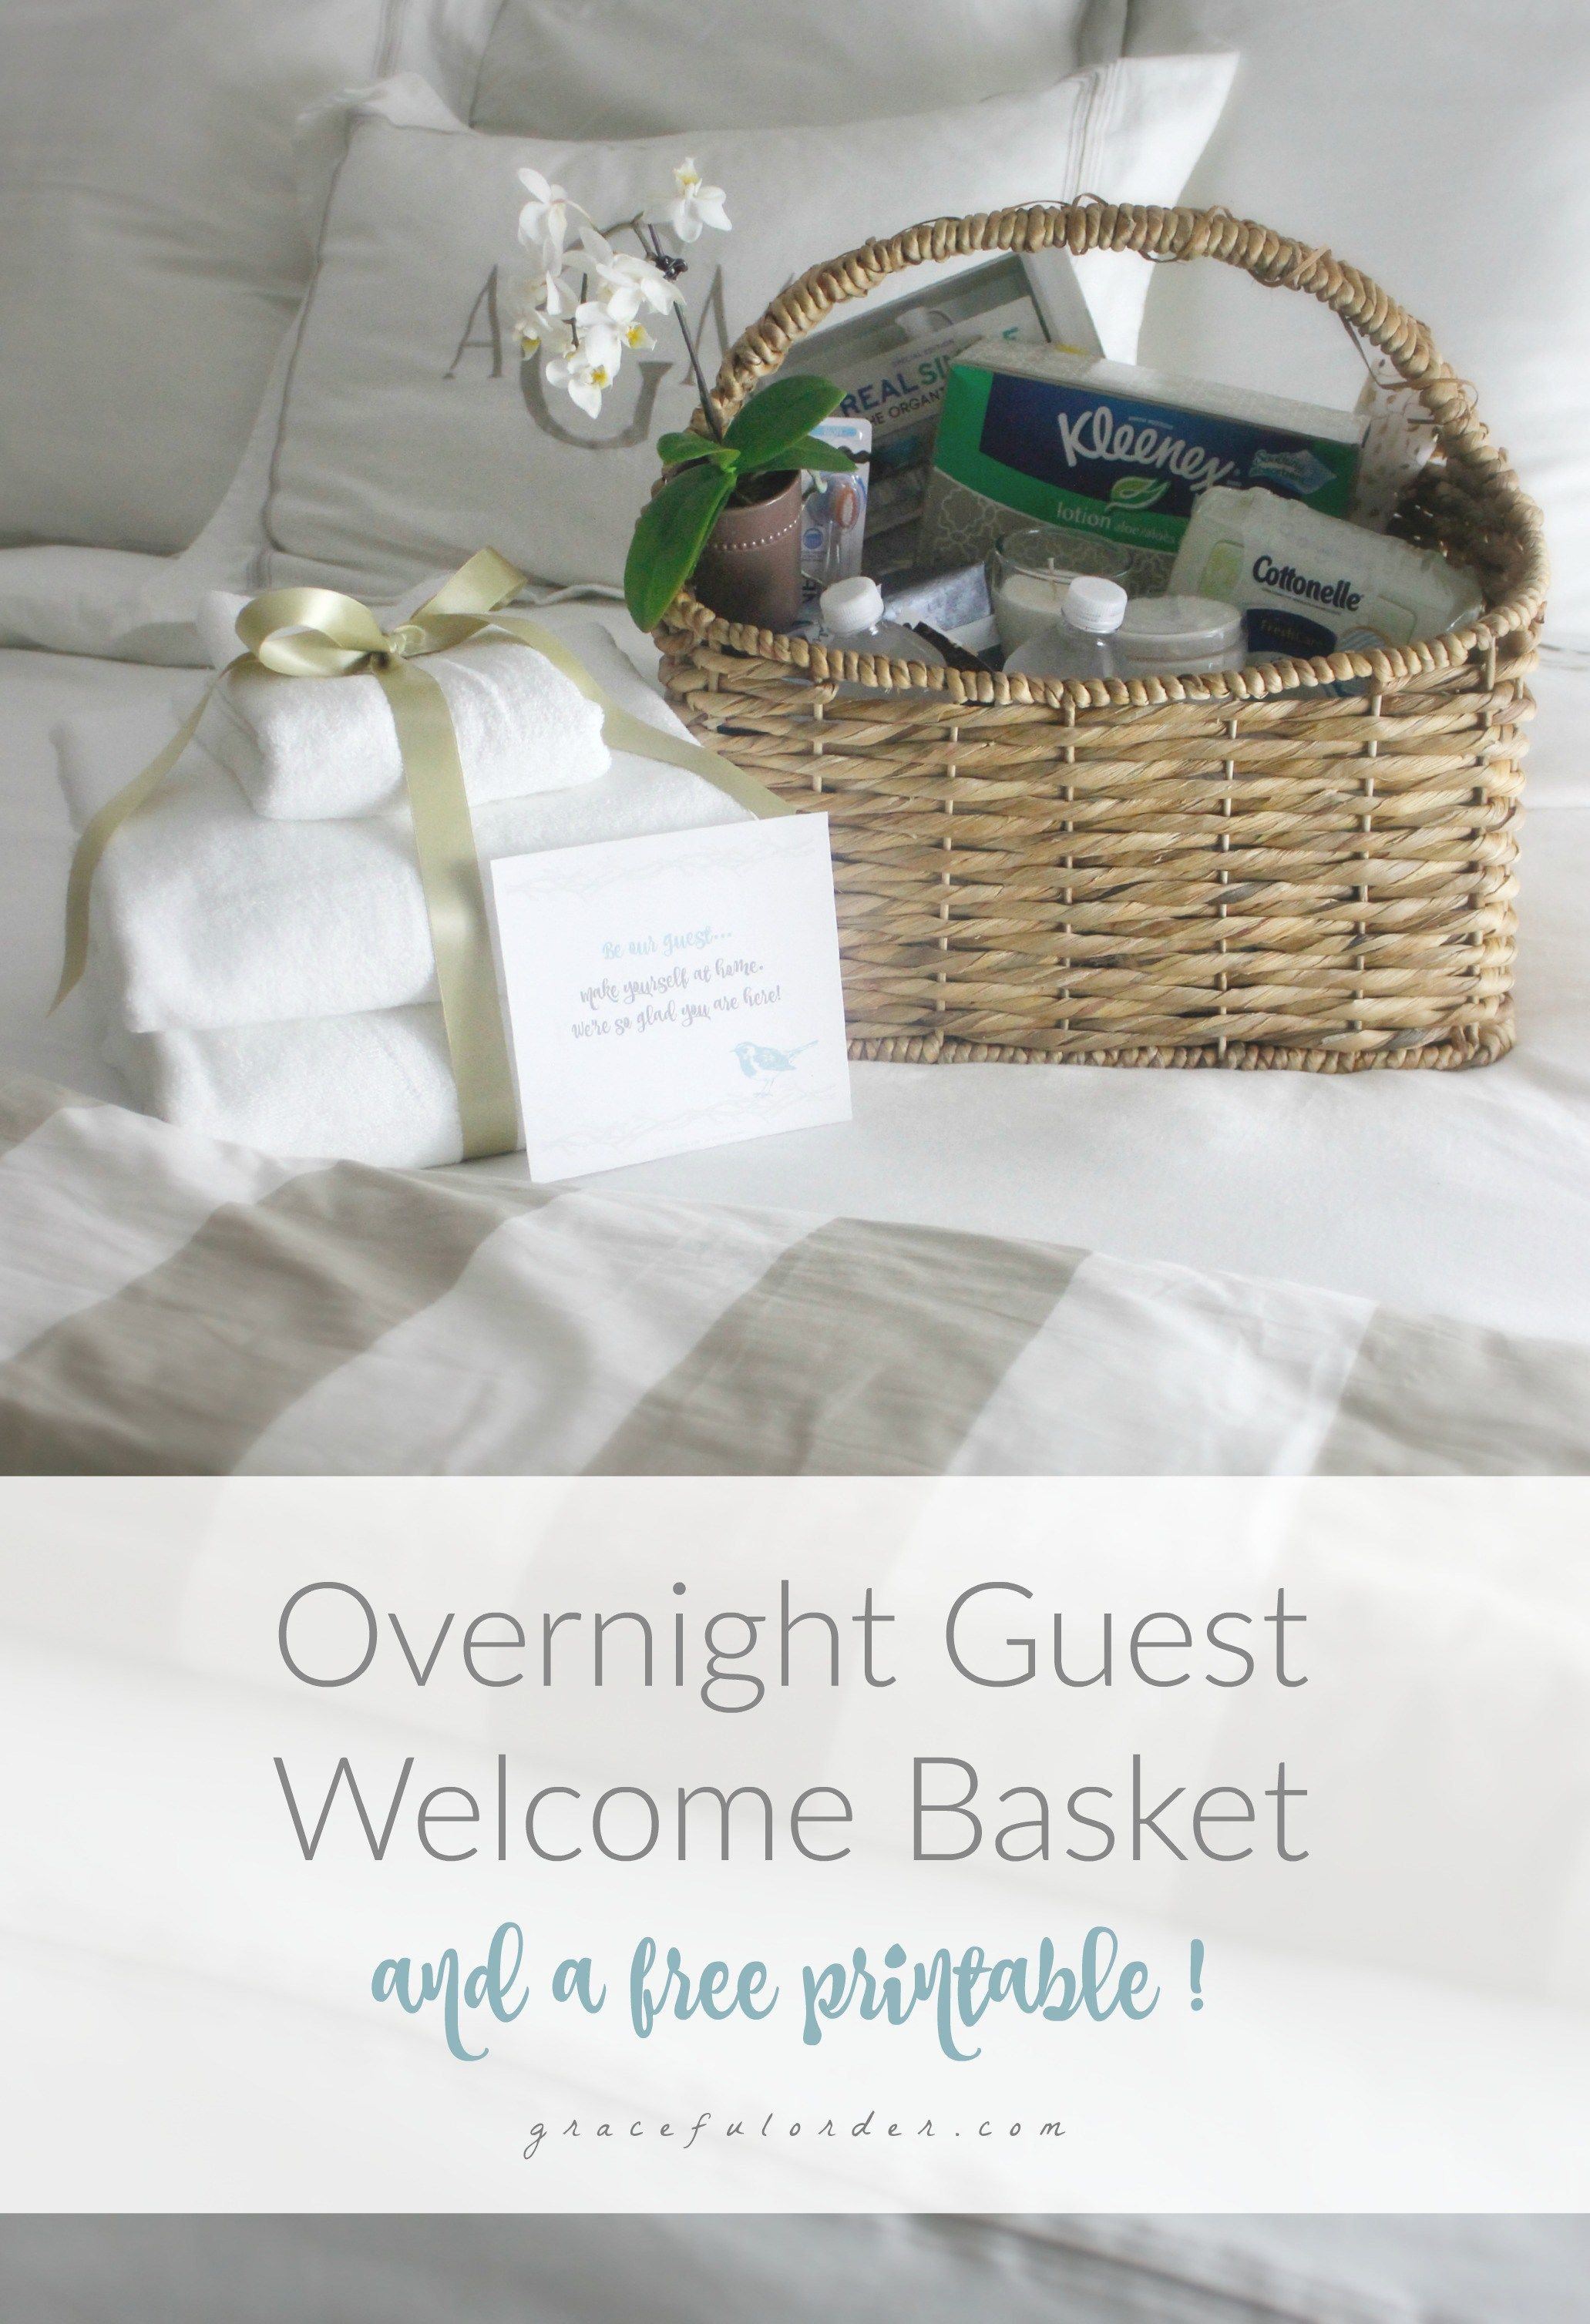 Overnight Guest Welcome Basket - Graceful Order | New home guest ...